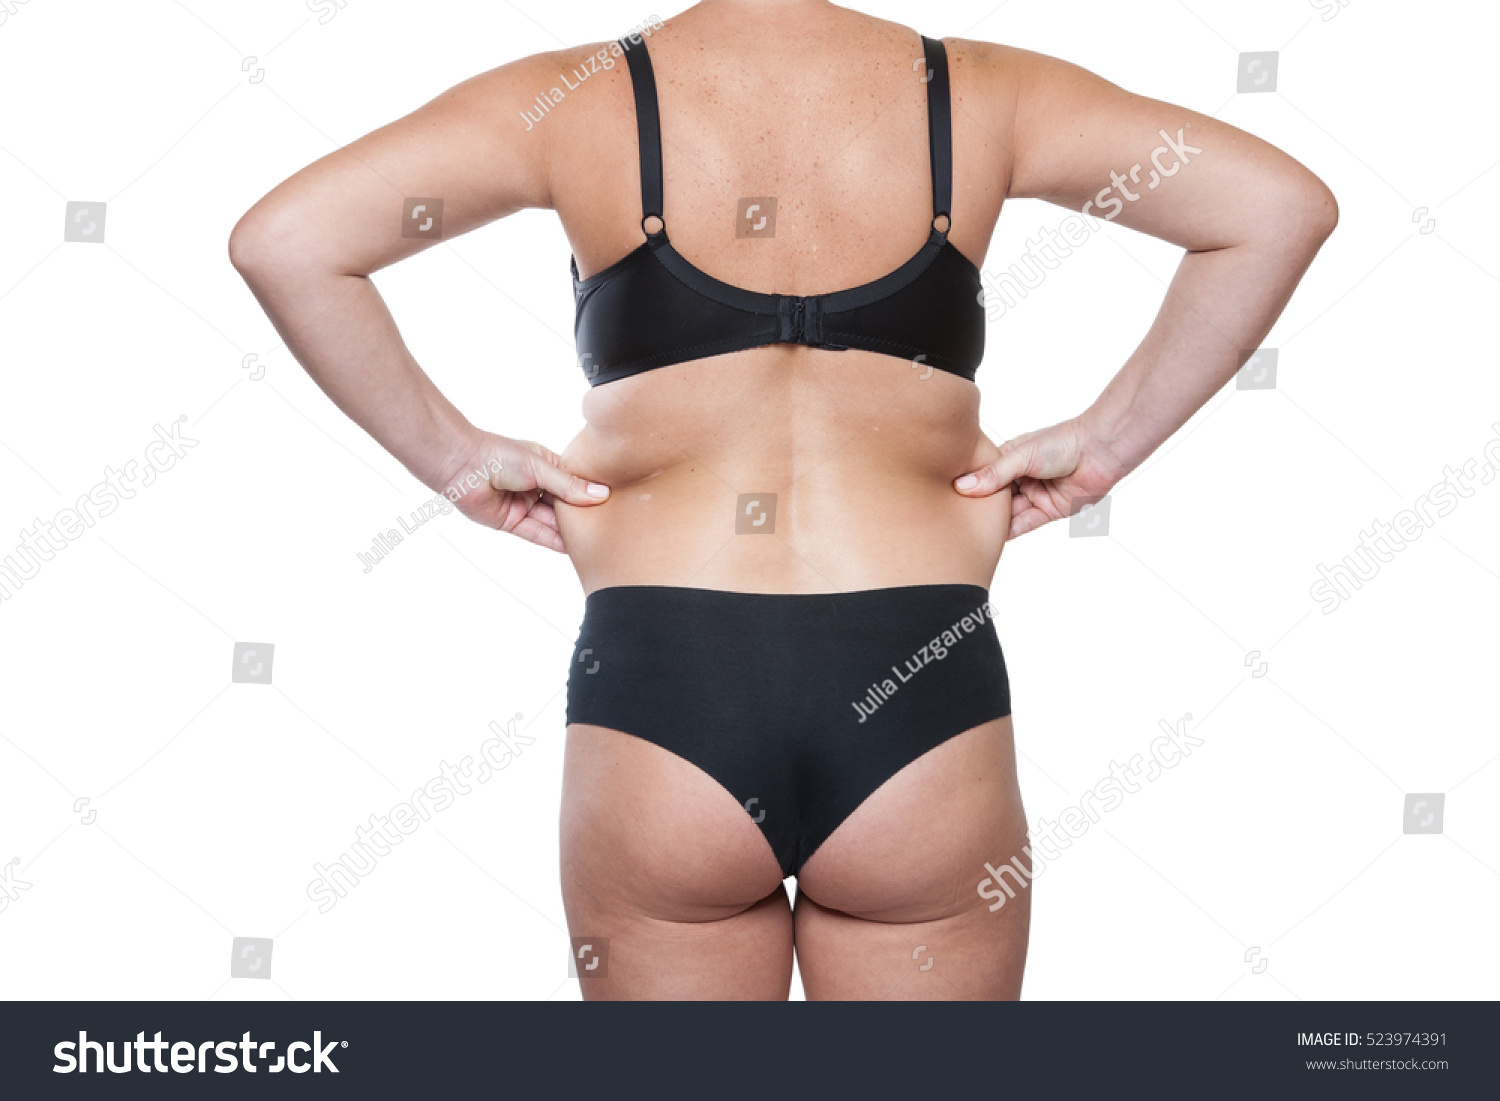 73f06517b33df Closeup Wrinkles Body Woman Wrinkles Waist Stock Photo (Edit Now ...